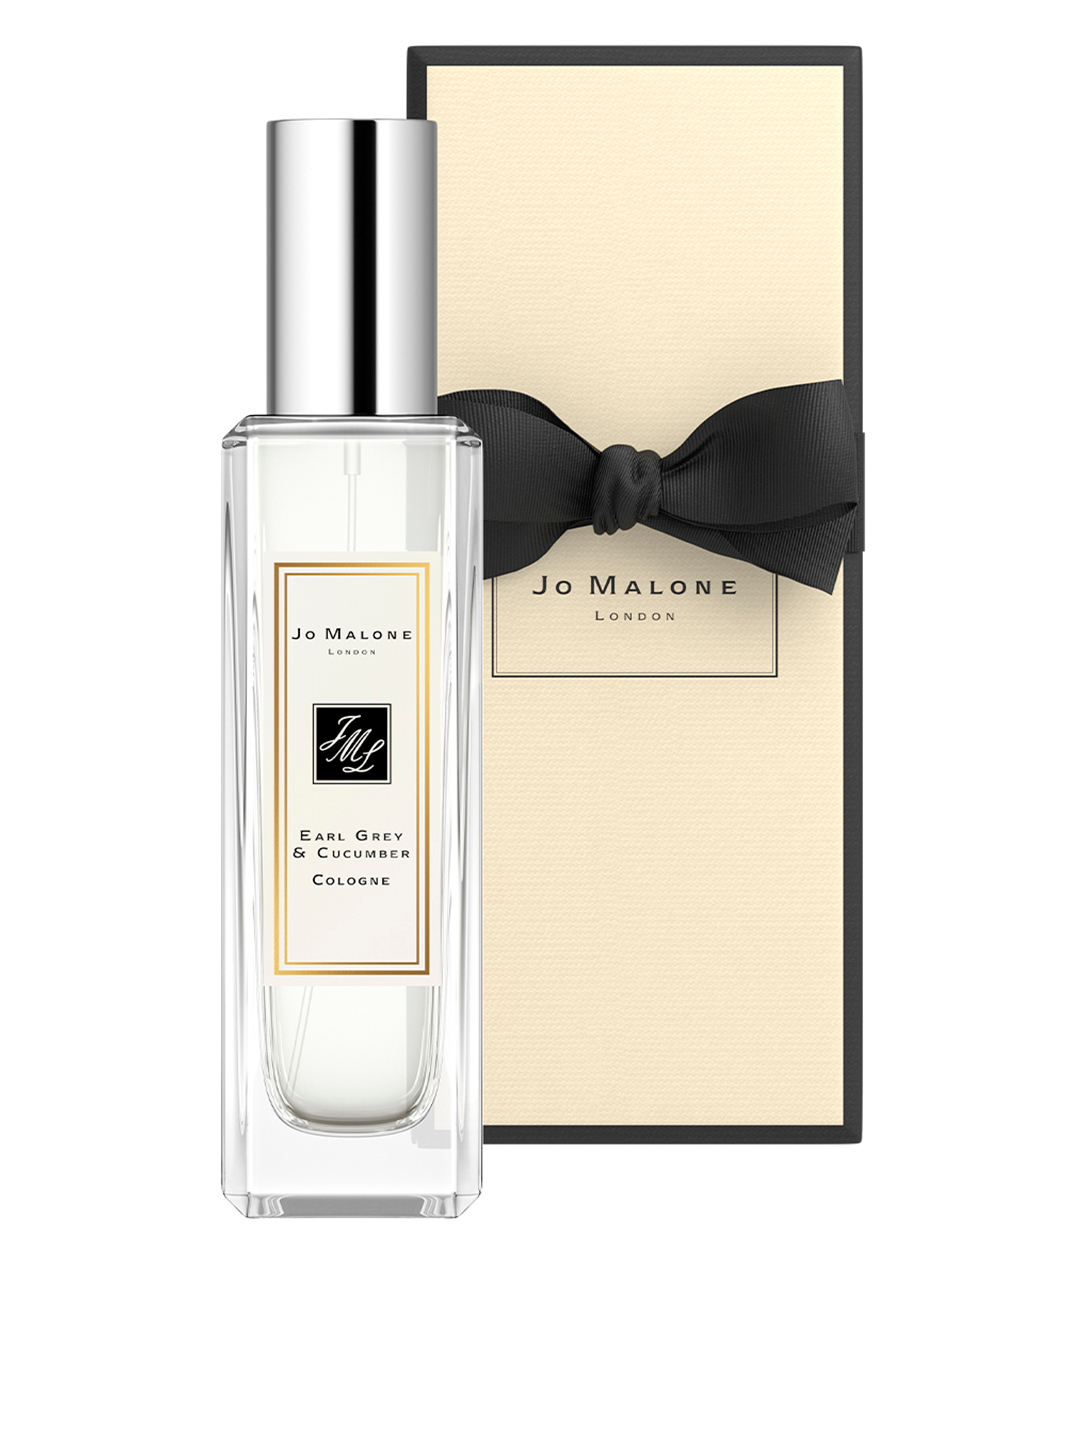 JO MALONE LONDON Earl Grey & Cucumber Cologne Beauty